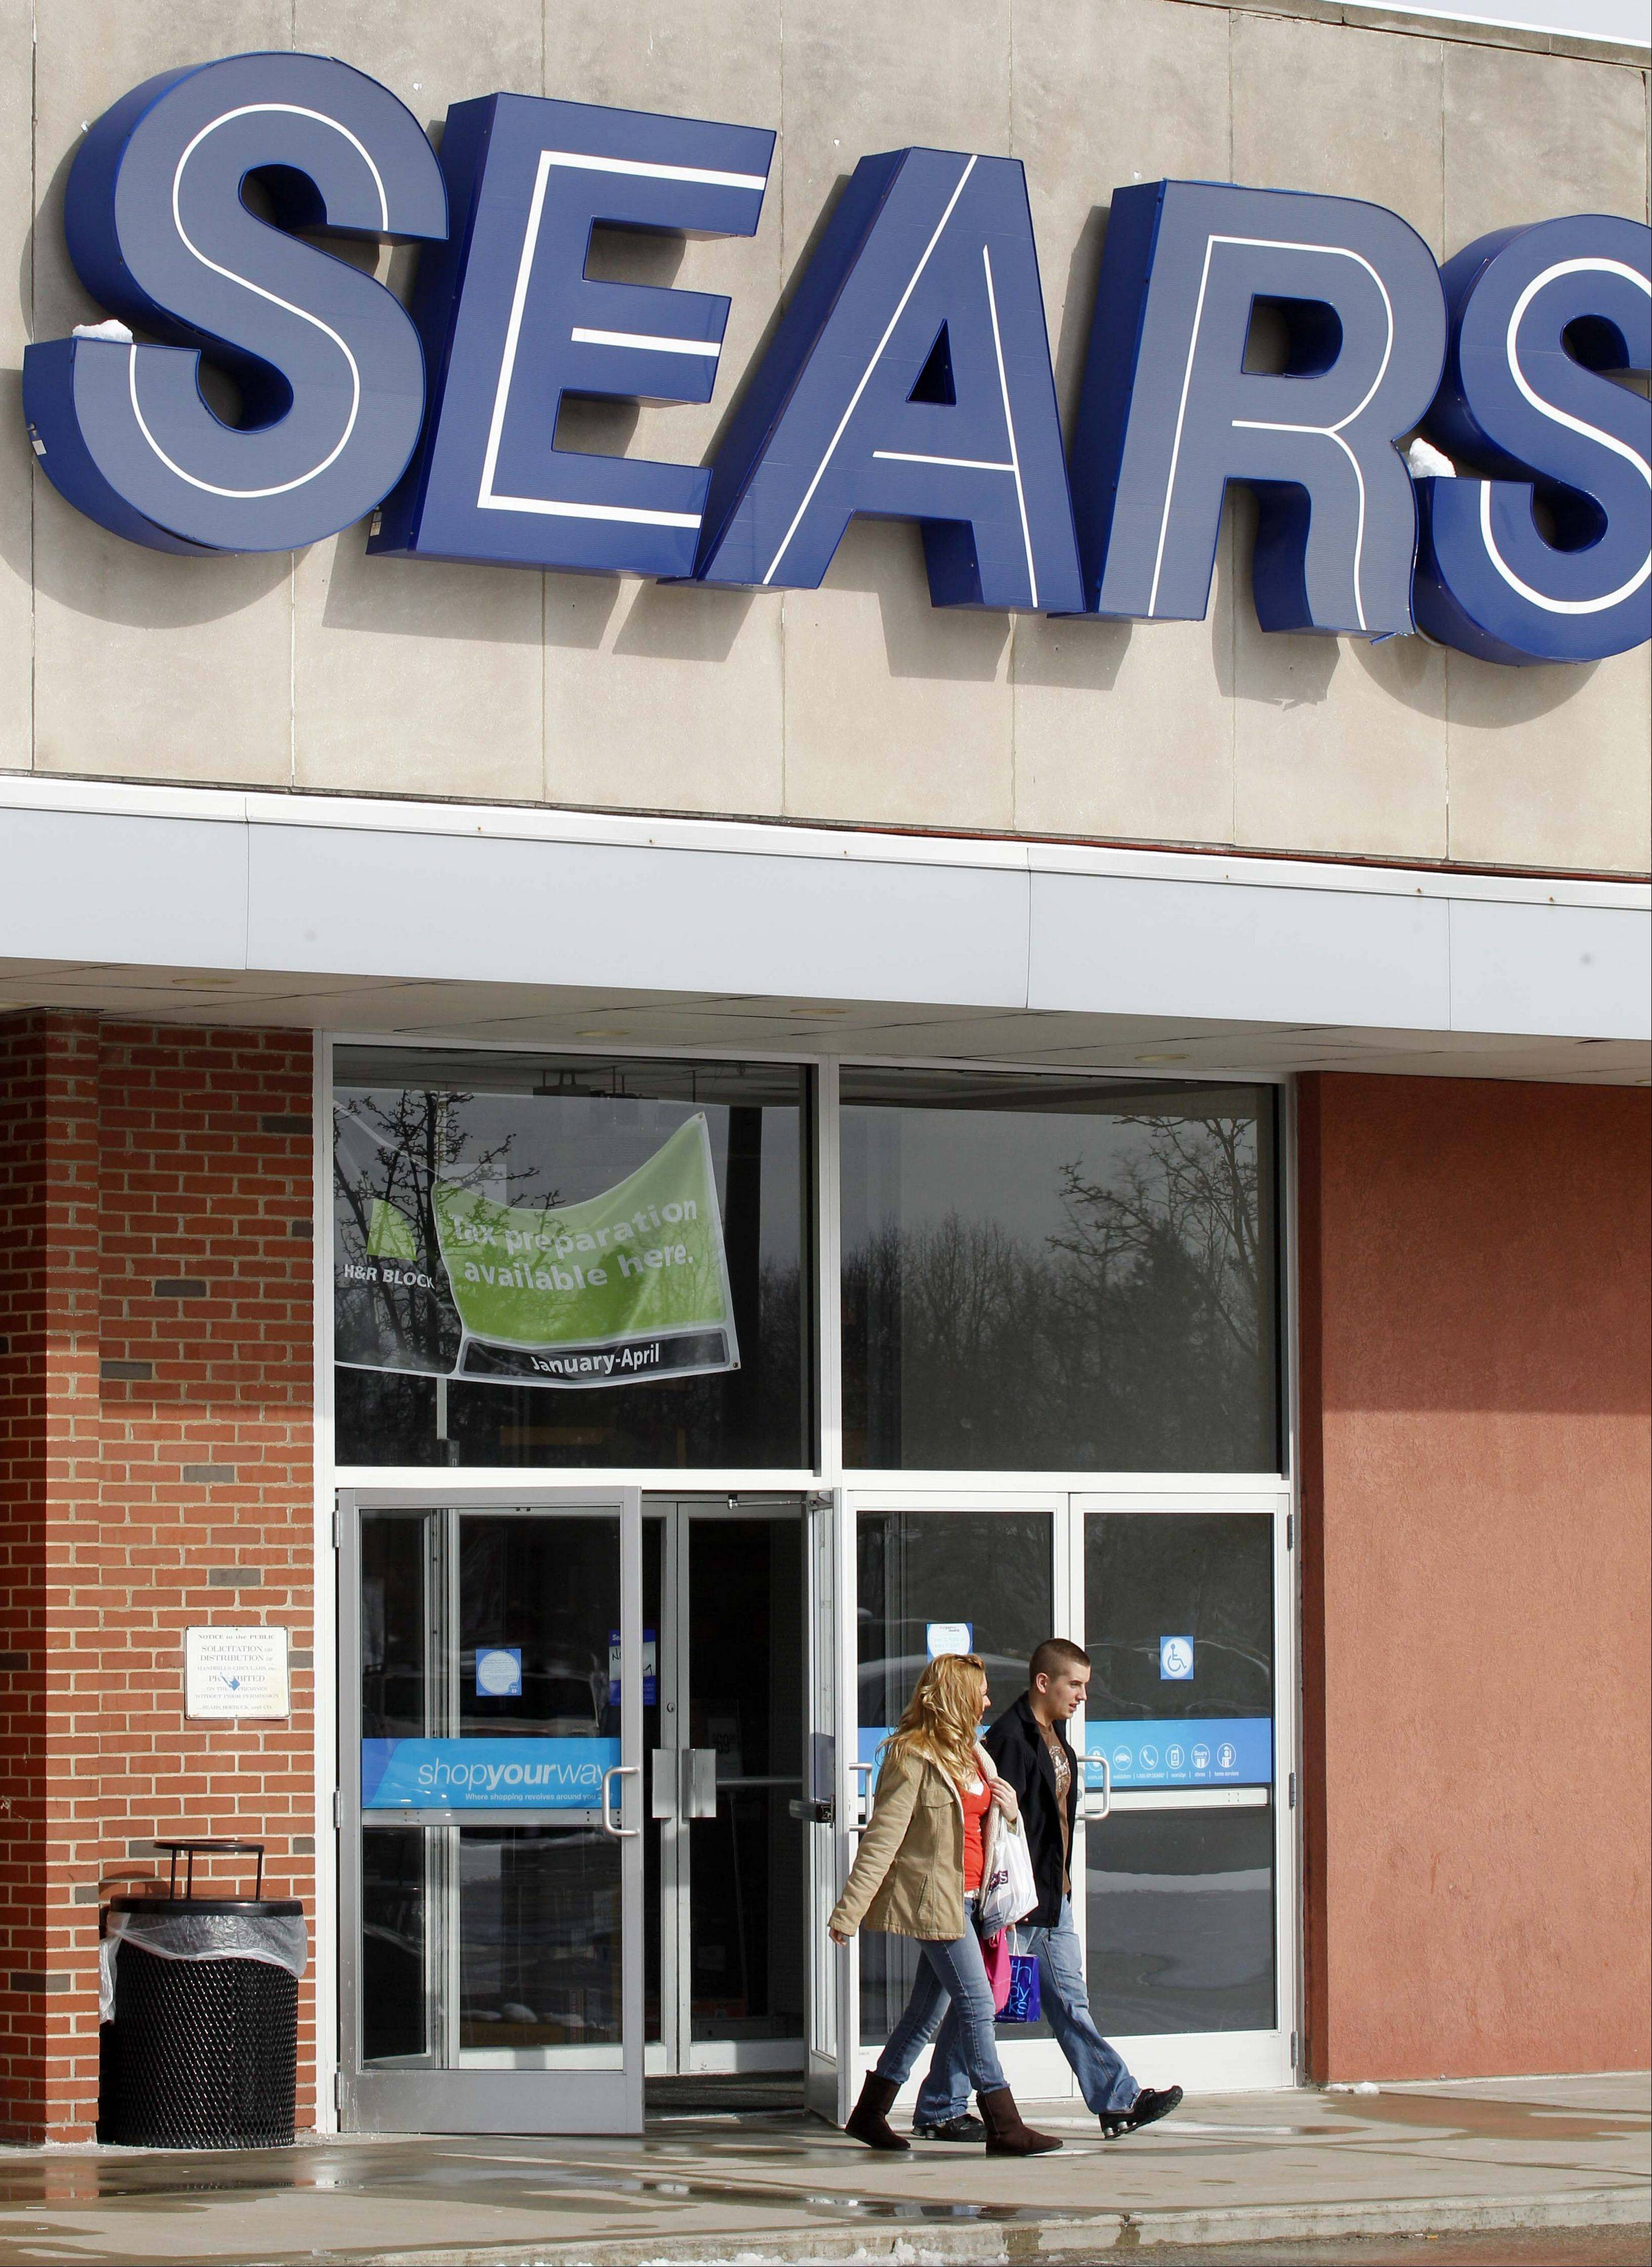 Associated PressSears Holdings Corp. has filed paperwork to spin off its smaller Hometown and Outlet stores as well as some hardware stores into a separate publicly traded company.